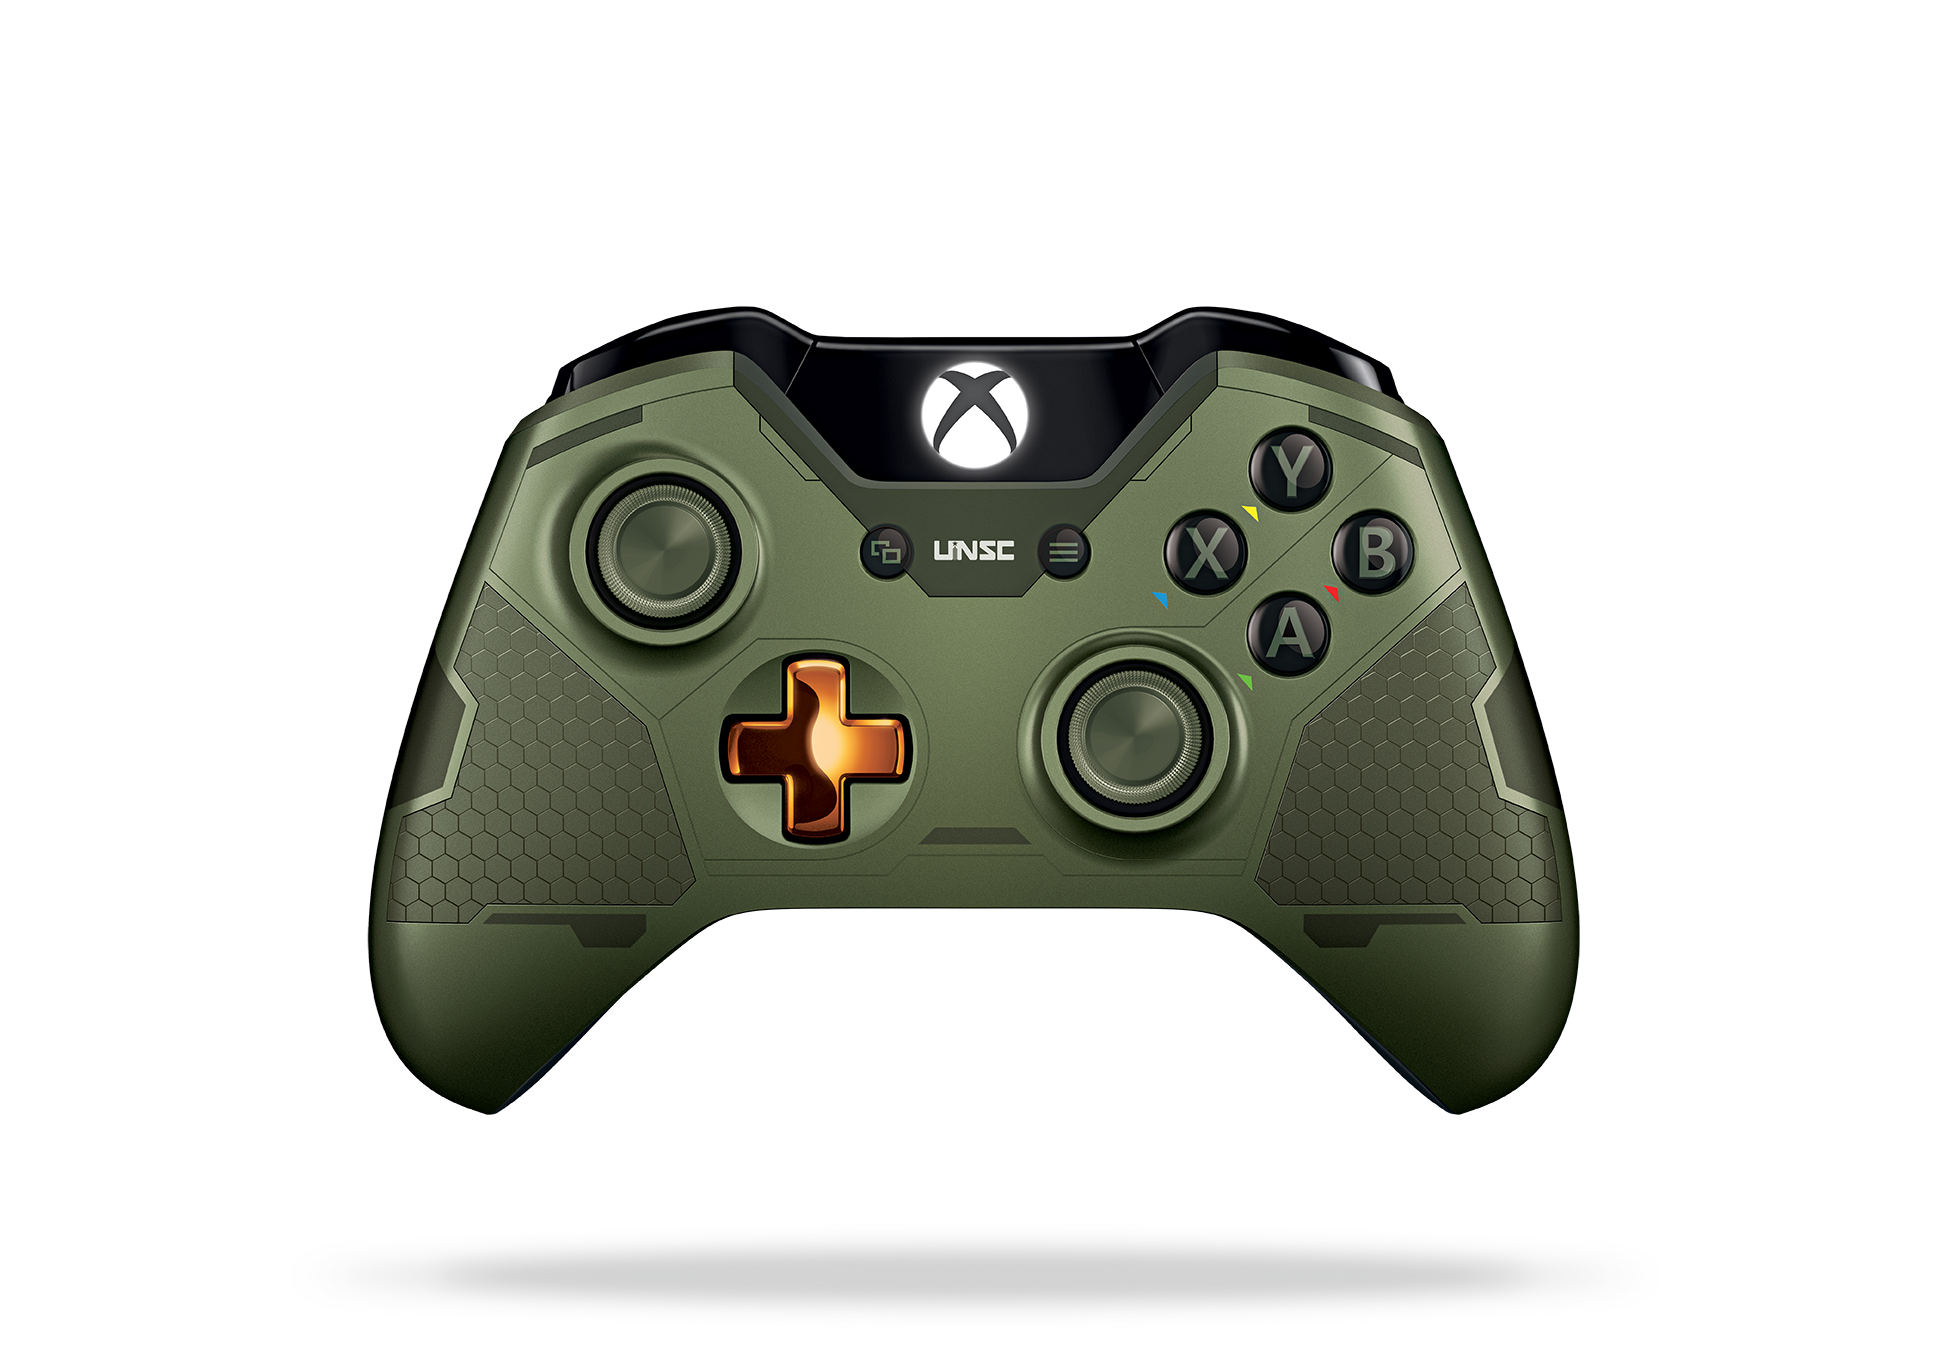 Xbox-One-Limited-Edition-Halo-5-Master-Chief-Controller-Front-Render-png